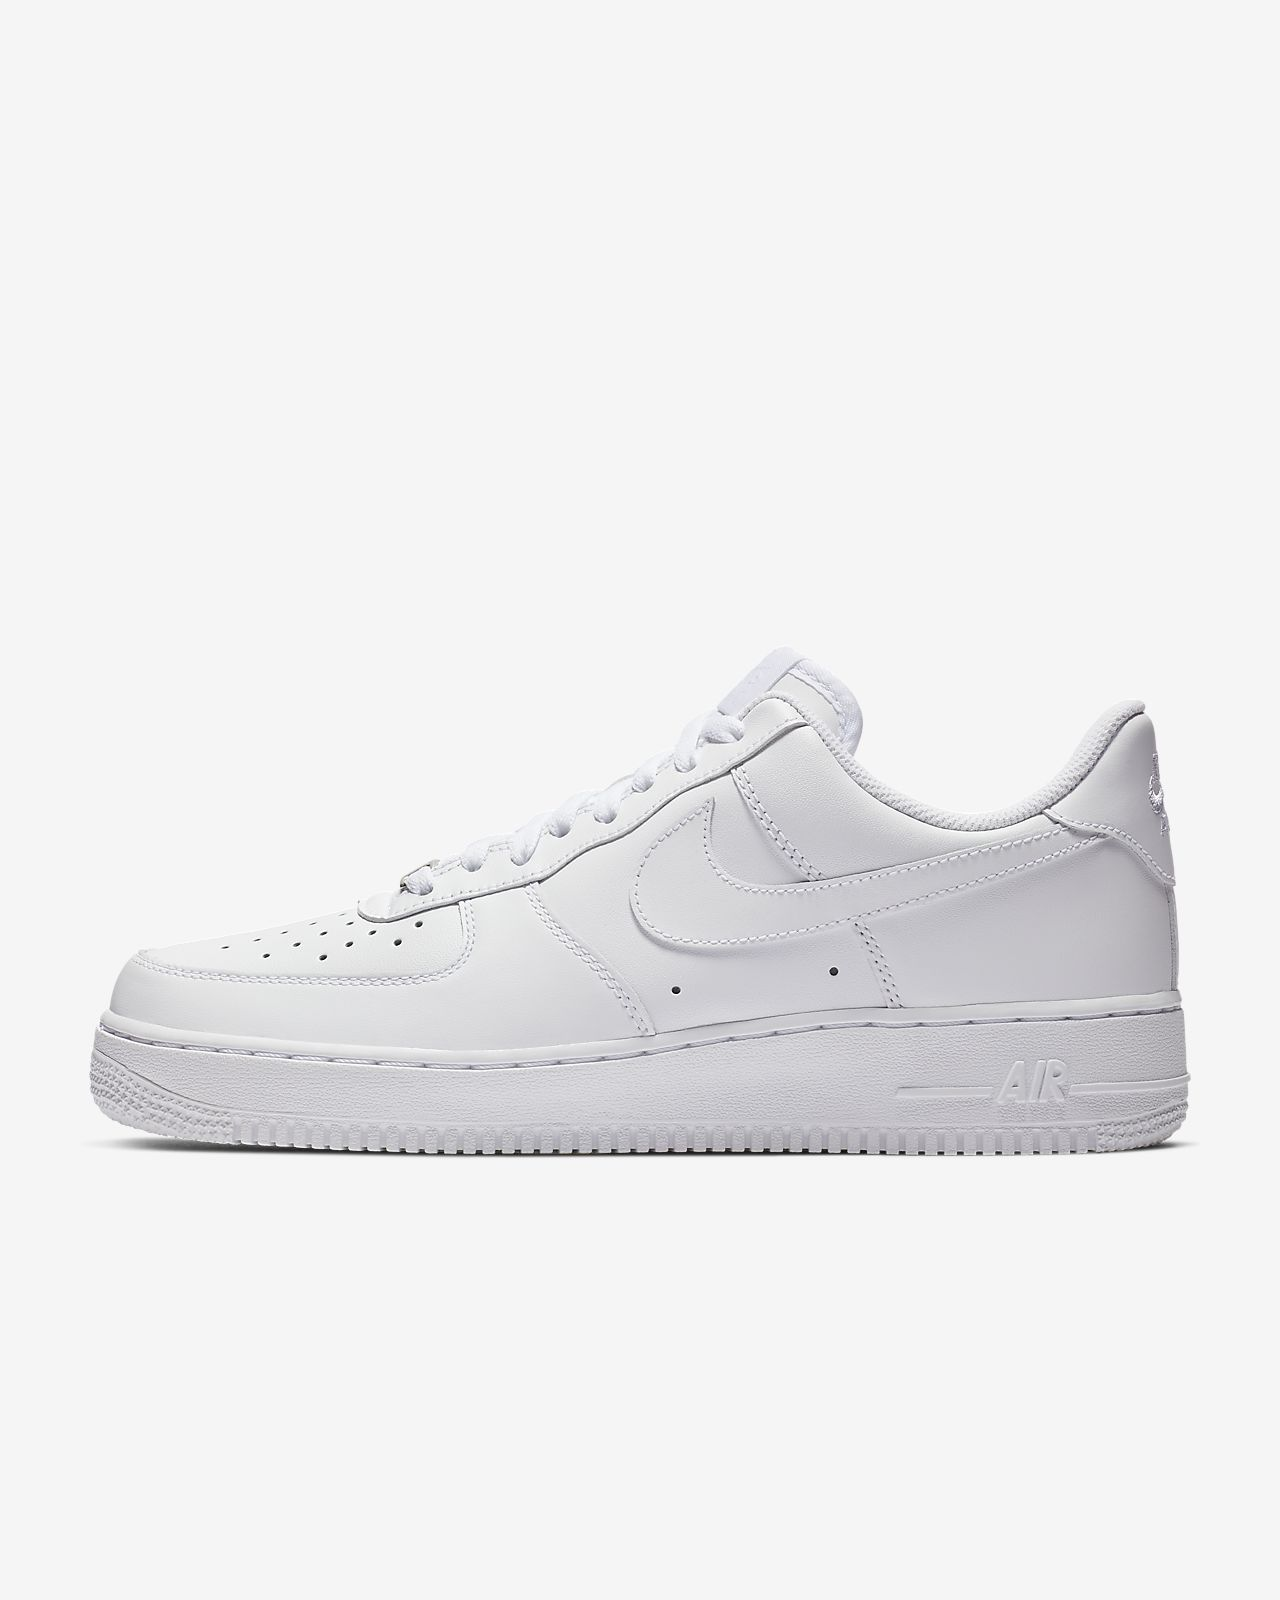 Nike Women's Nike Air Force 1 '07 Xx Sneaker, Size 7.5 M White from NORDSTROM | People